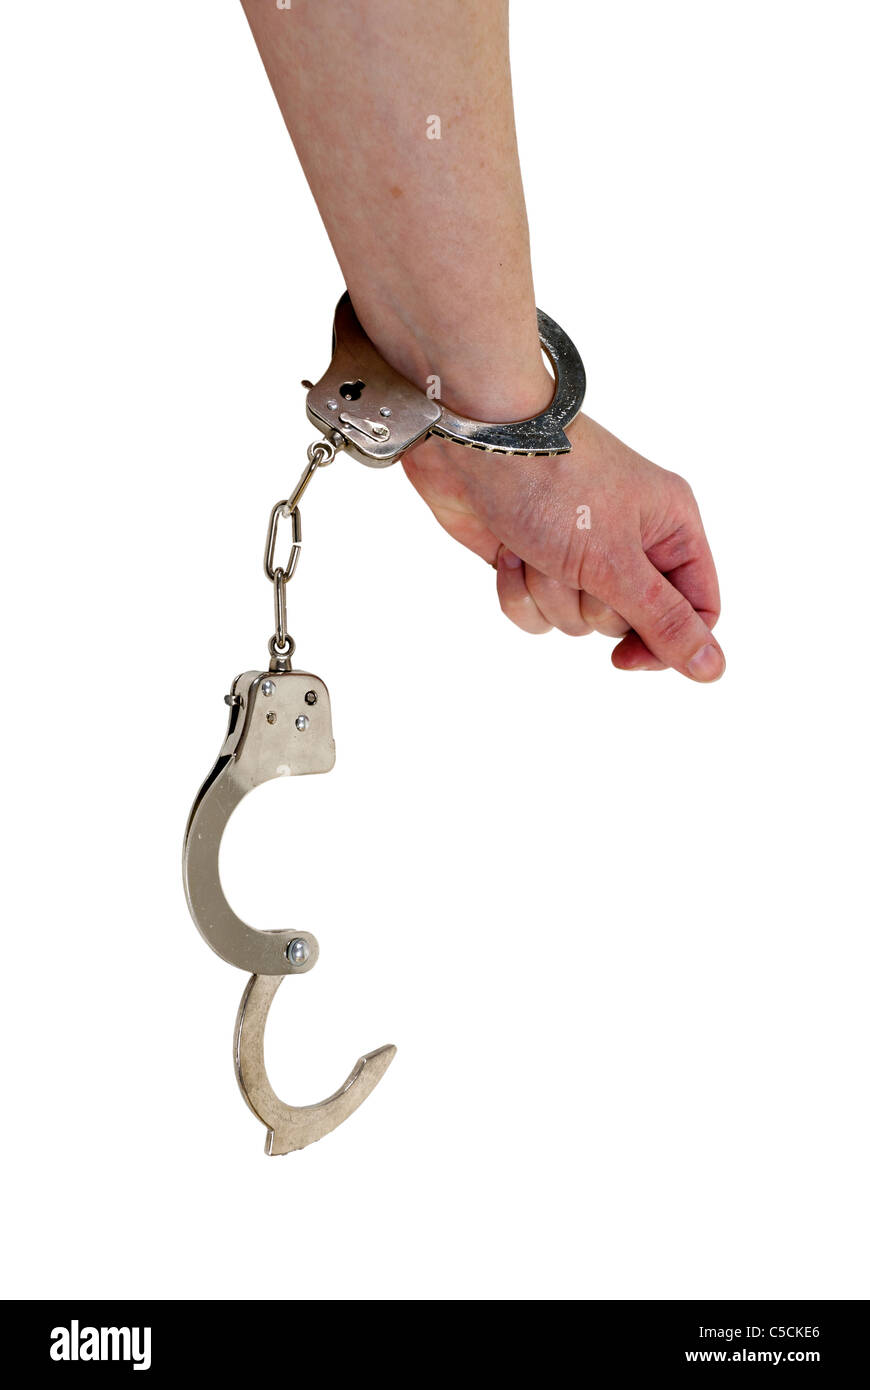 Breaking out of handcuffs made of metal with mechanical clasp - path included - Stock Image